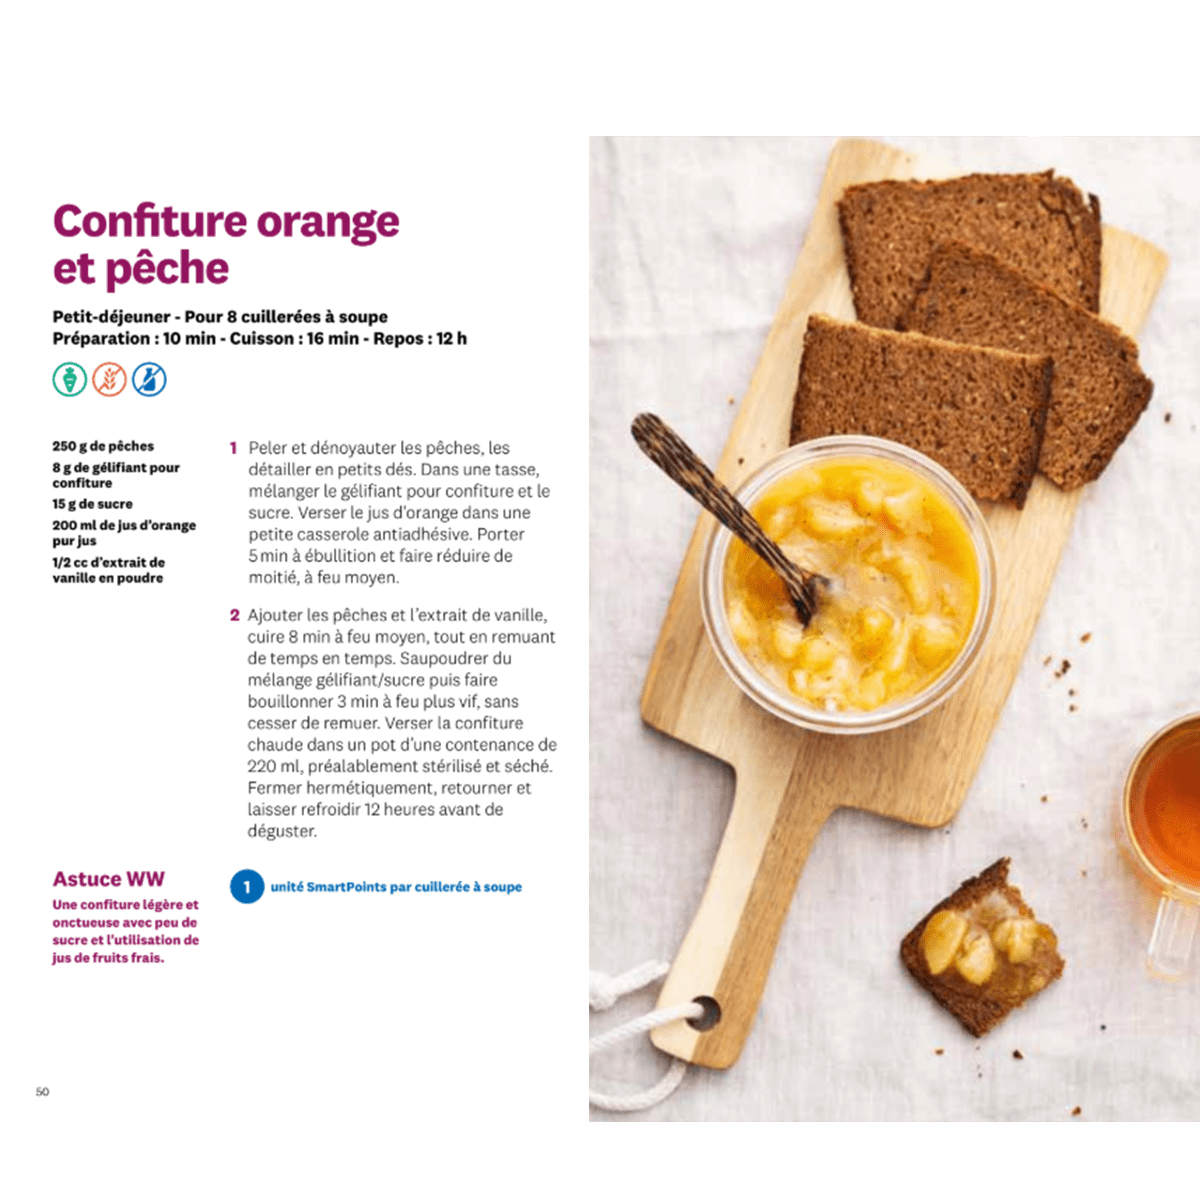 Cuisinez Malin confiture orange et peche